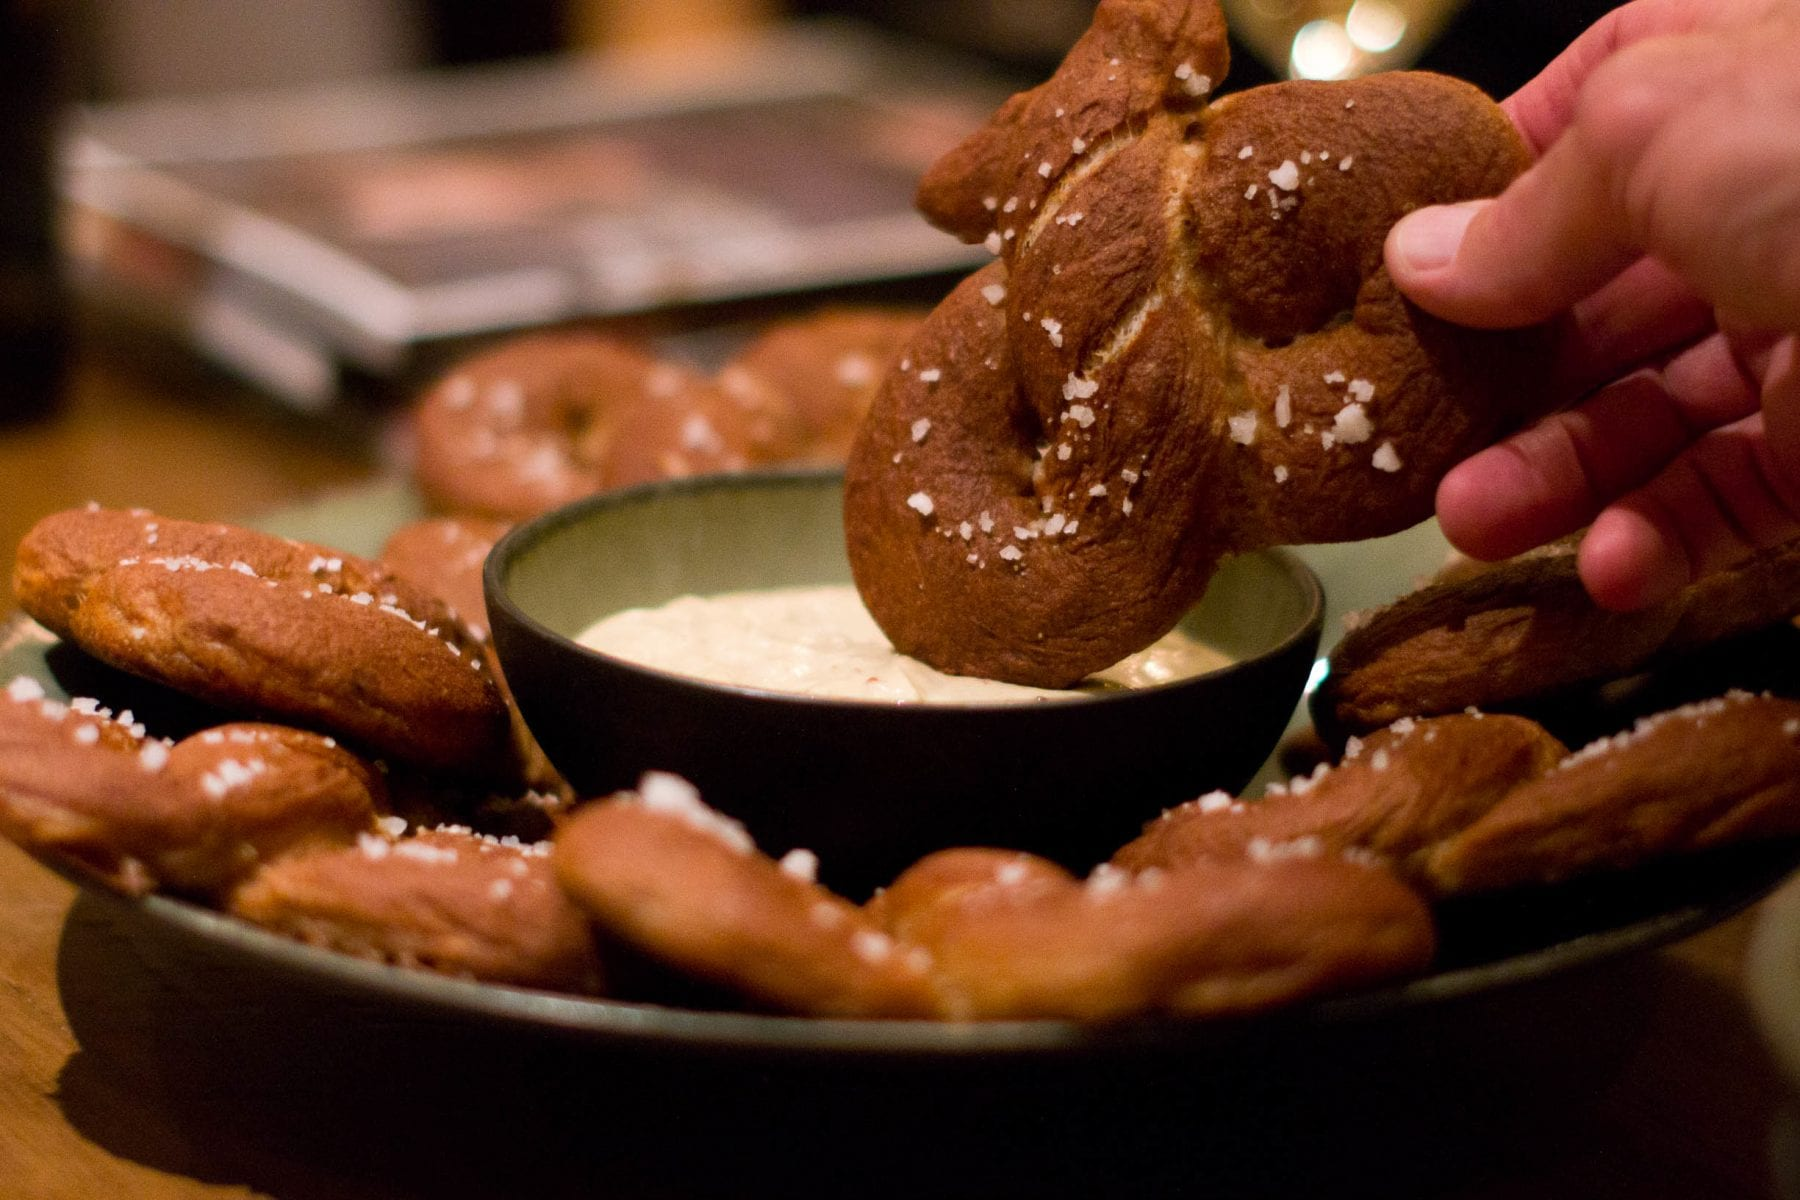 A soft pretzel with a healthy dose of spelt